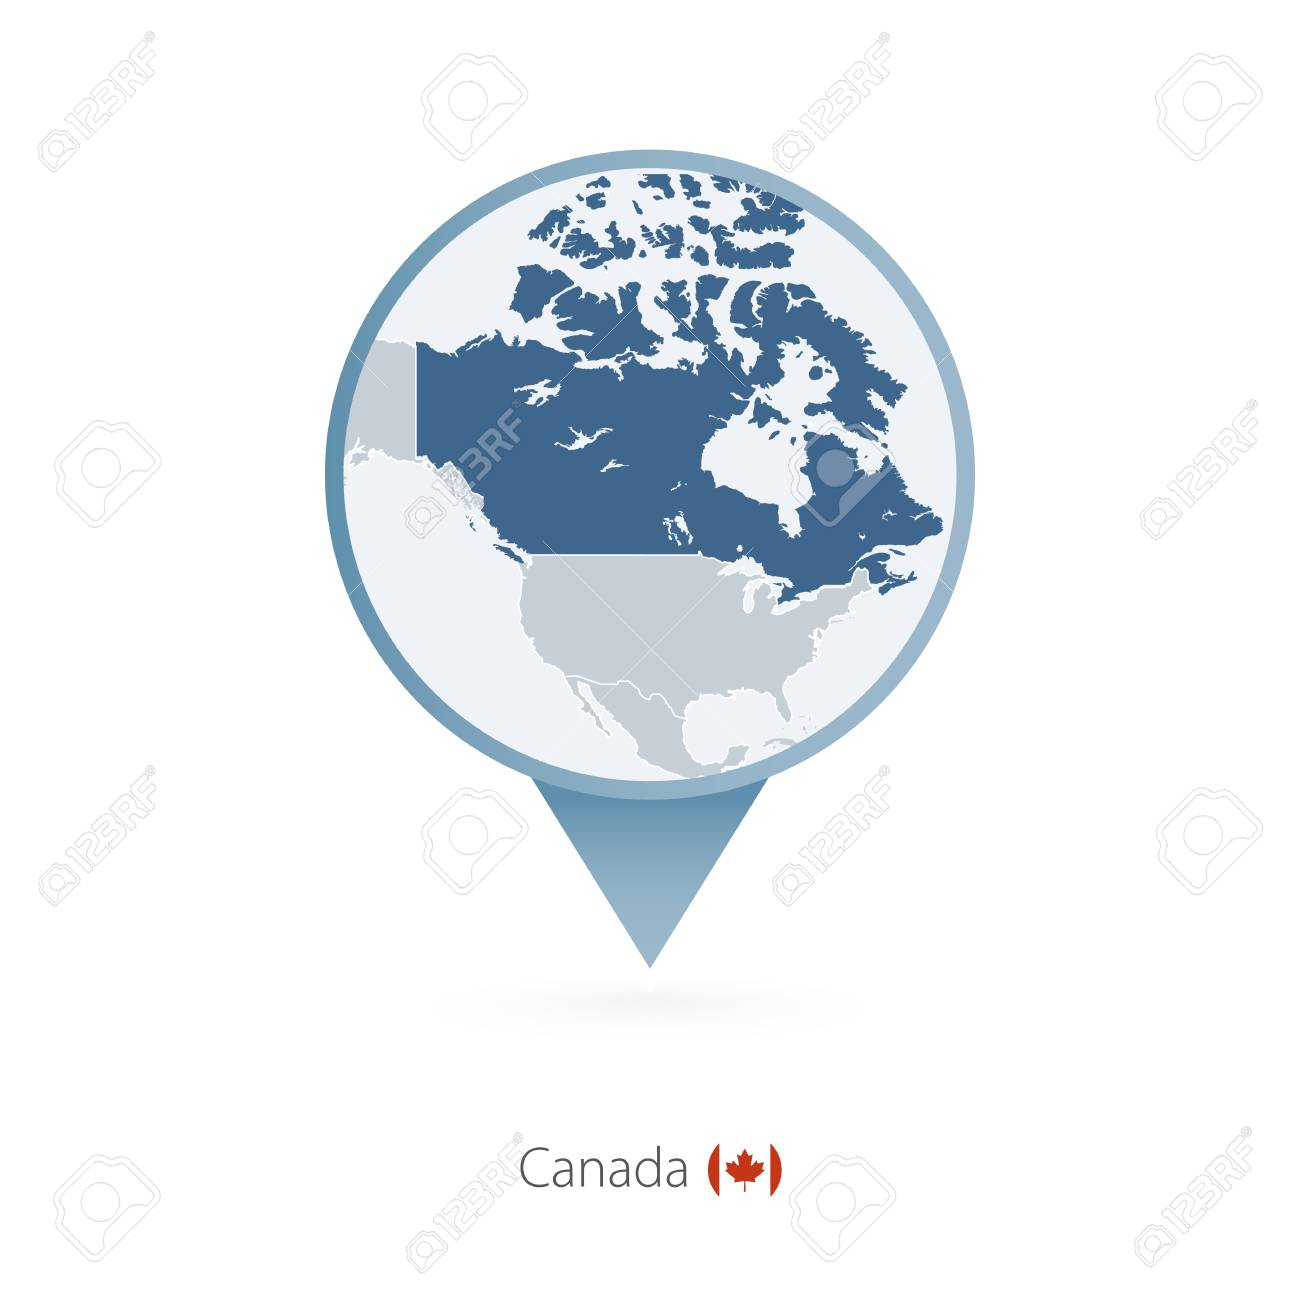 Map Of Canada And Surrounding Countries.Map Pin With Detailed Map Of Canada And Neighboring Countries